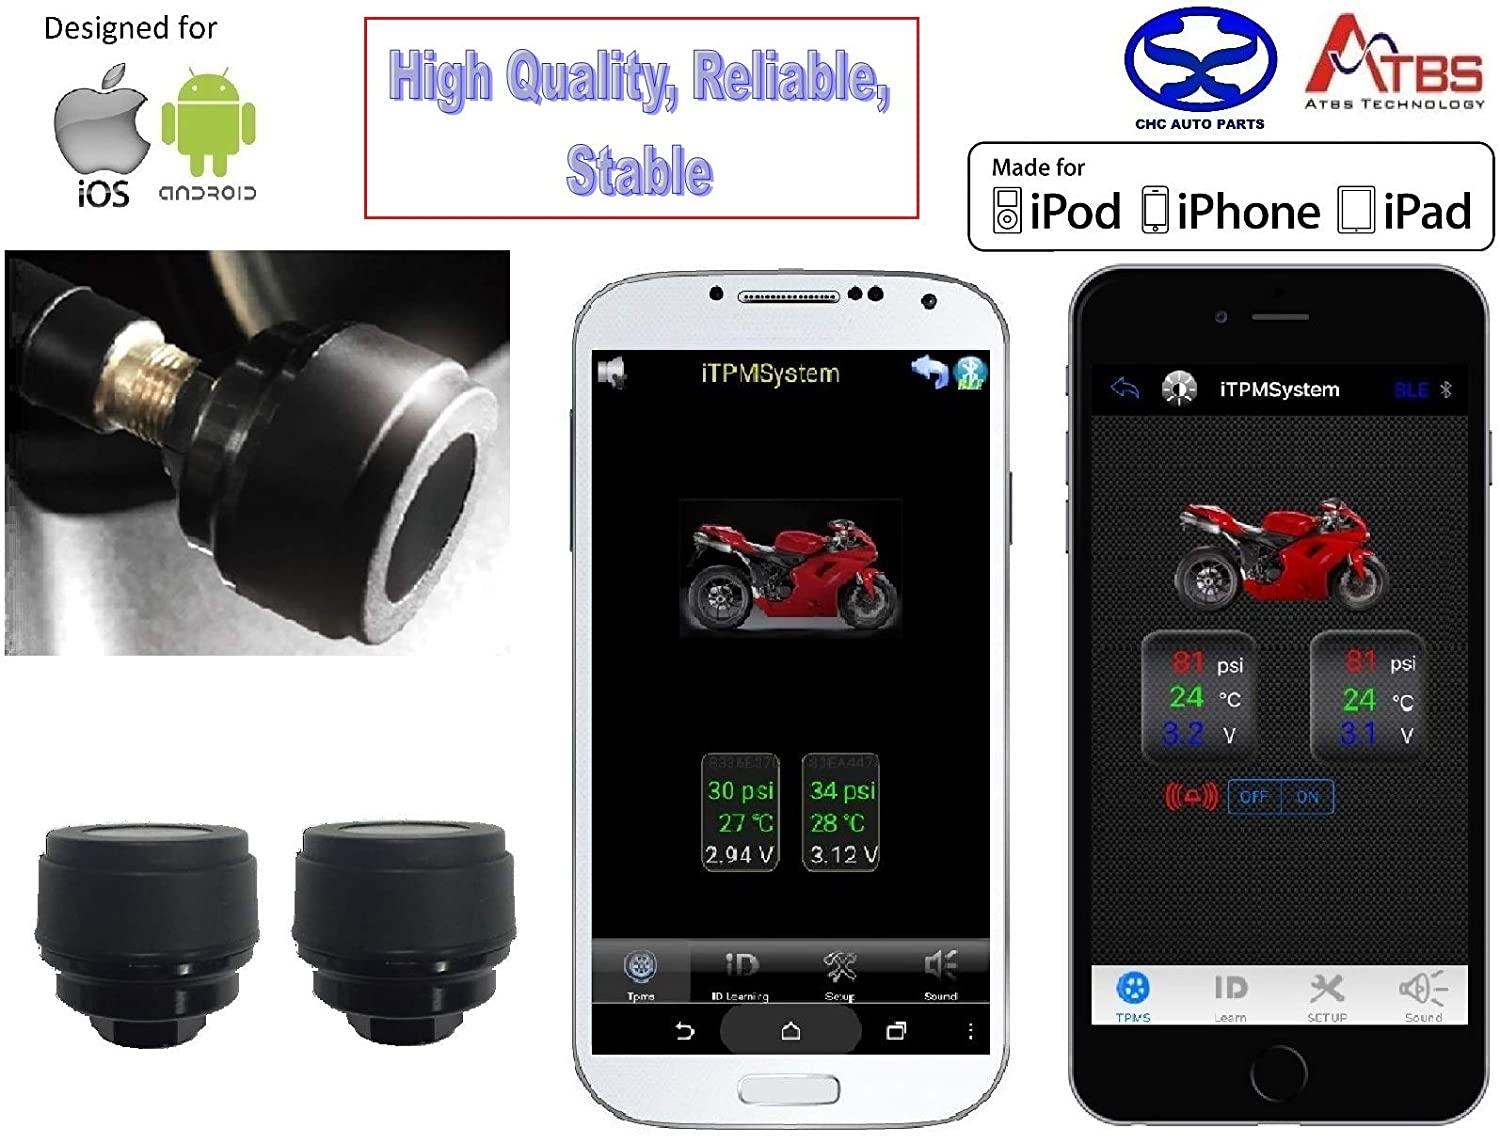 Amazon com: CHC Auto Parts AT63 Bluetooth BLE TPMS External